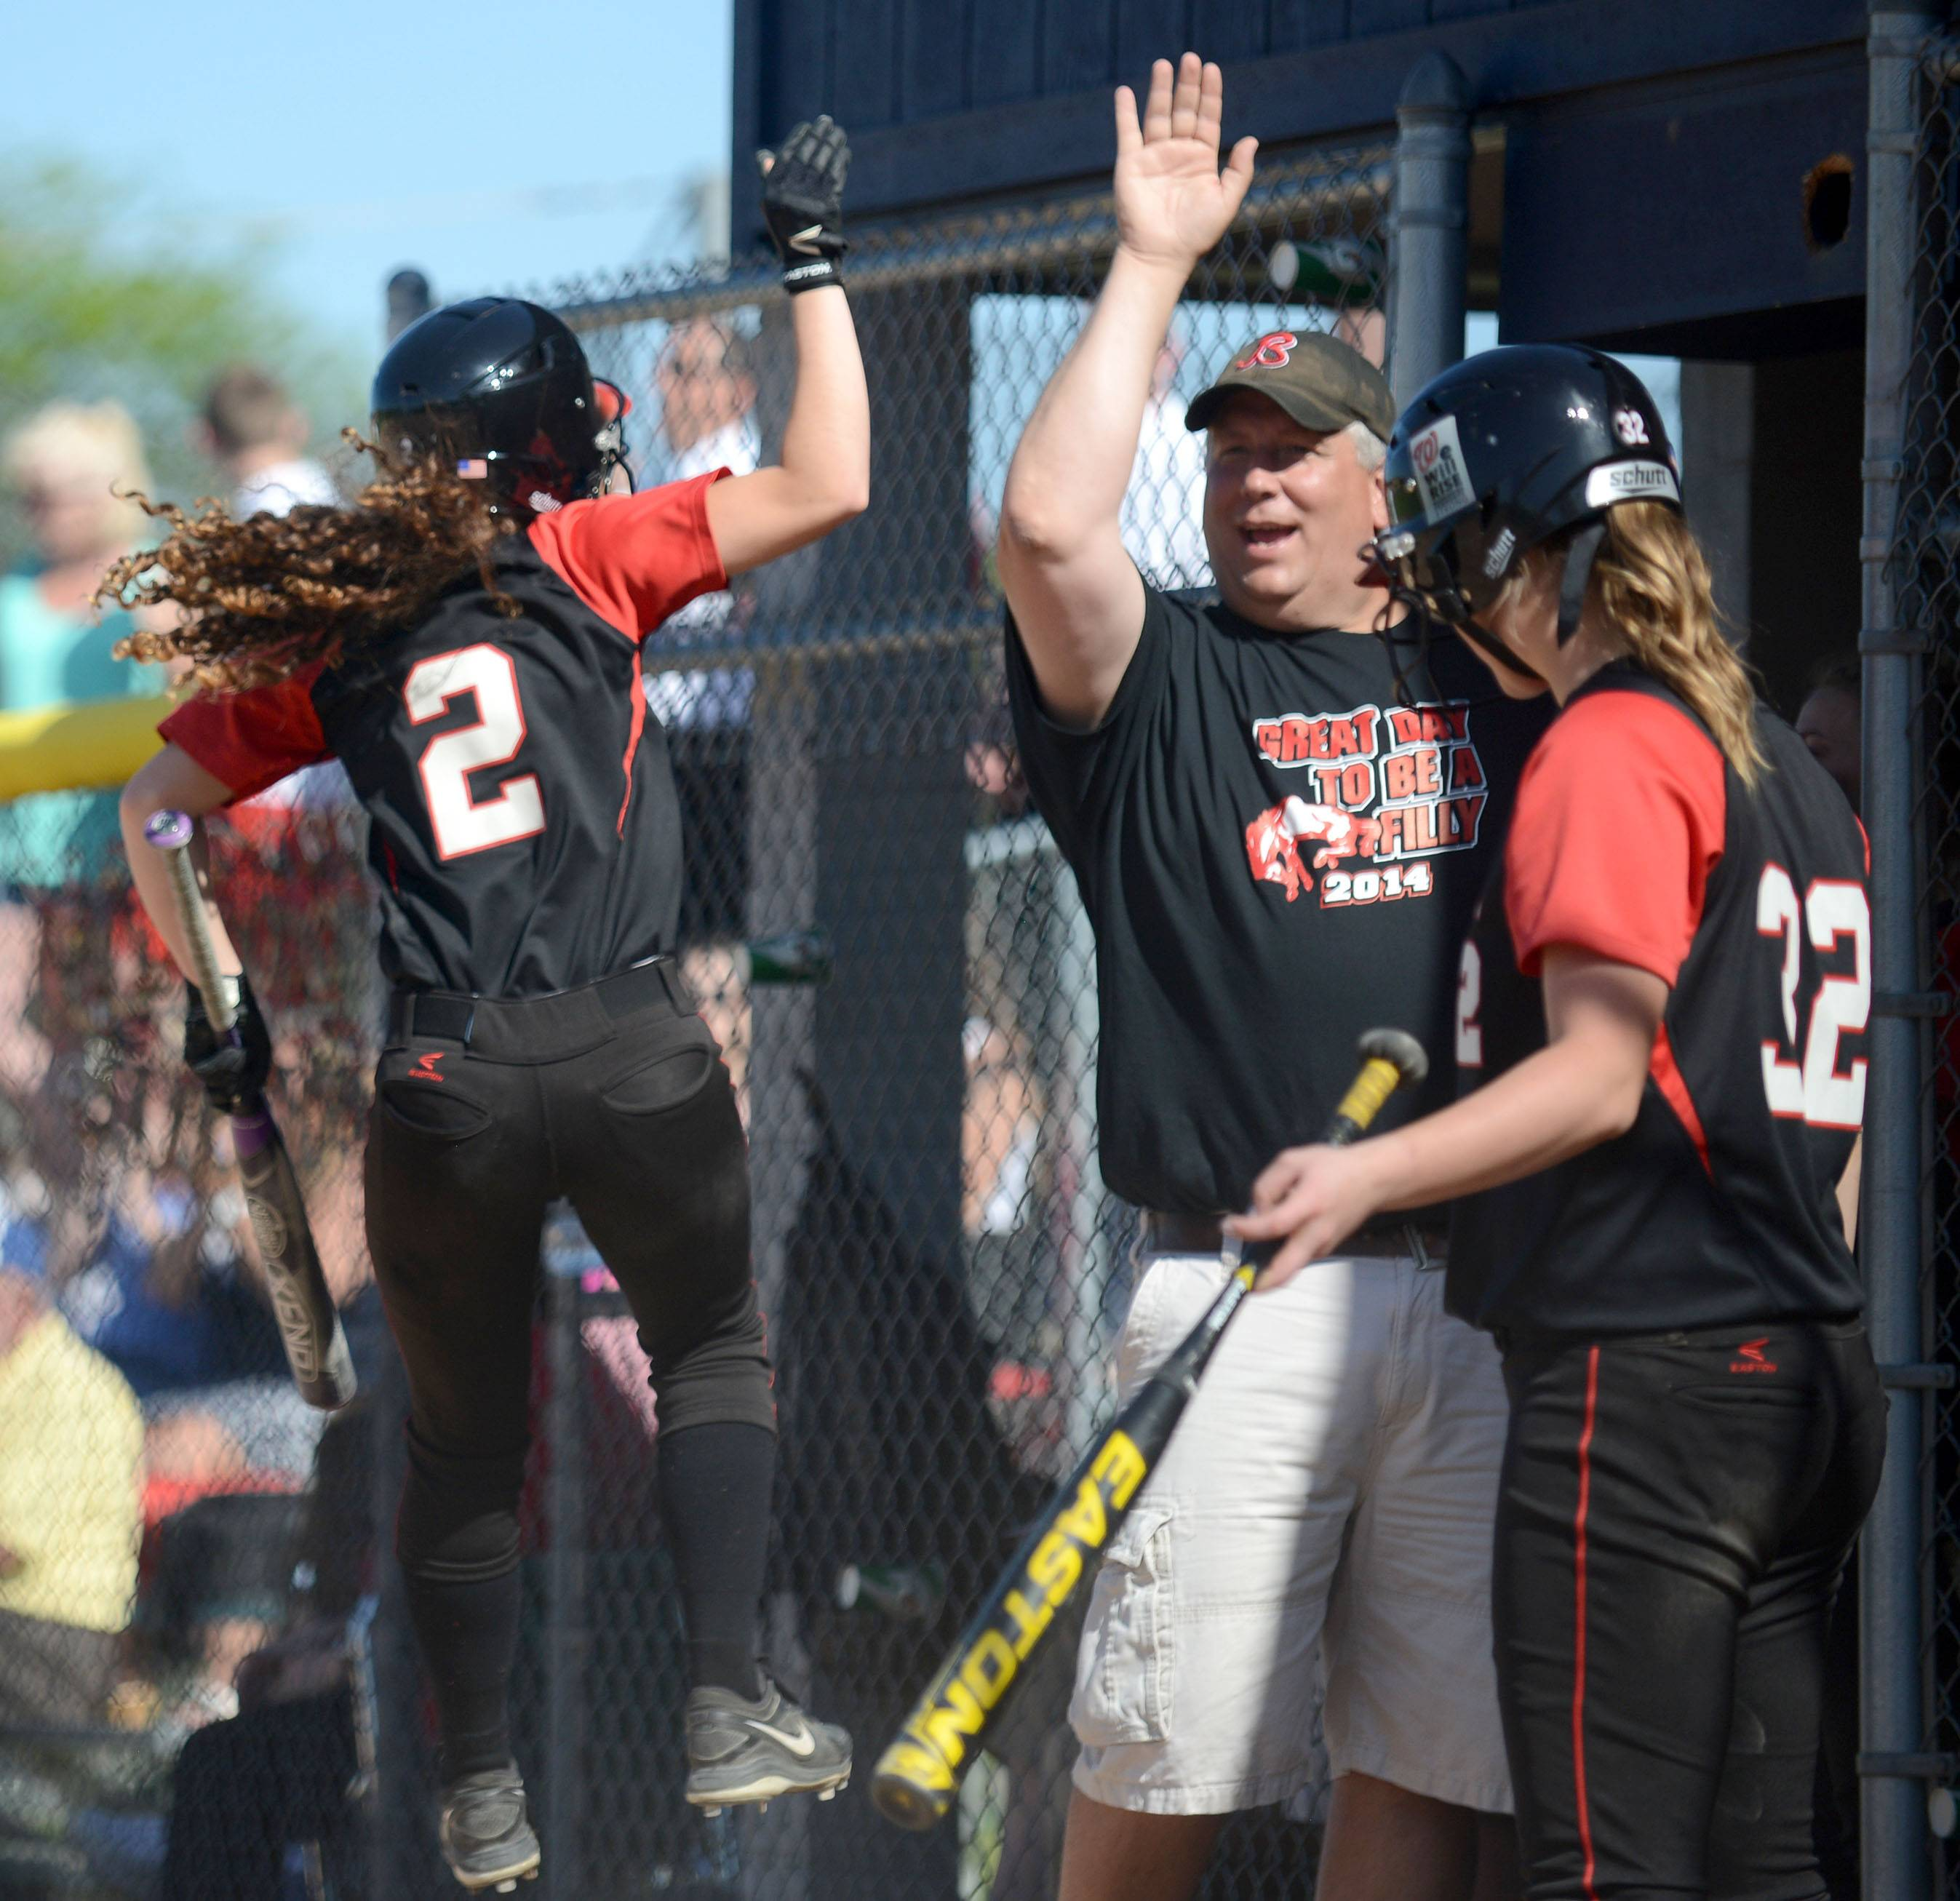 Barrington's Jenna Privatsky (2) leaps into the air to give assistant coach Jon Sander a high-five after scoring a run over Cary-Grove in the second inning of the Class 4A girls softball regional championship in Cary on Friday, May 30.